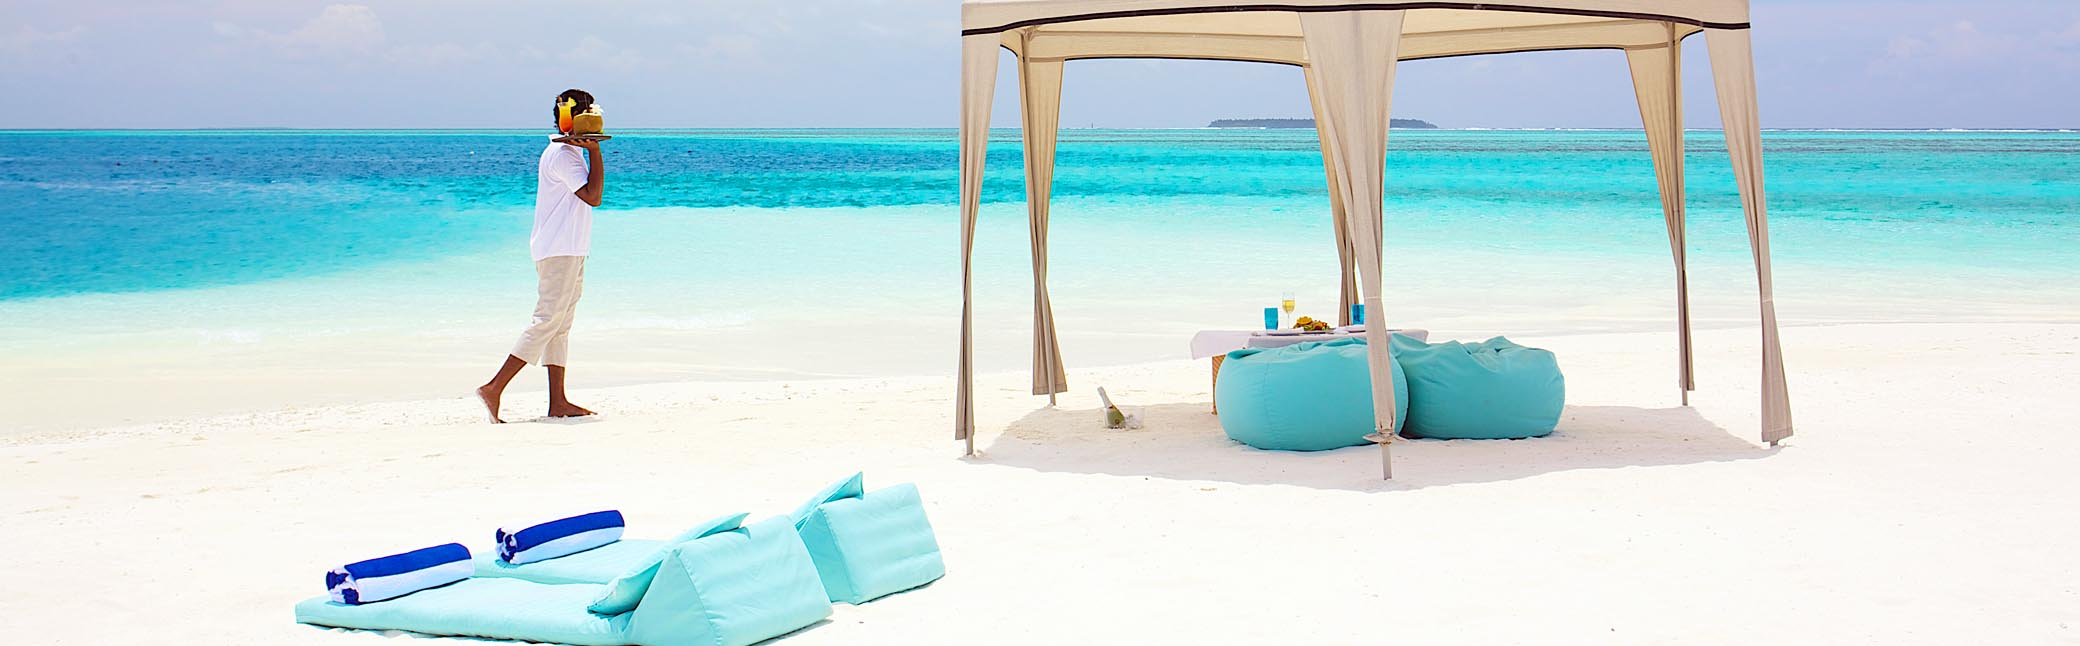 Maldives Honeymoon Resorts by LUXUR HOLIDAYS